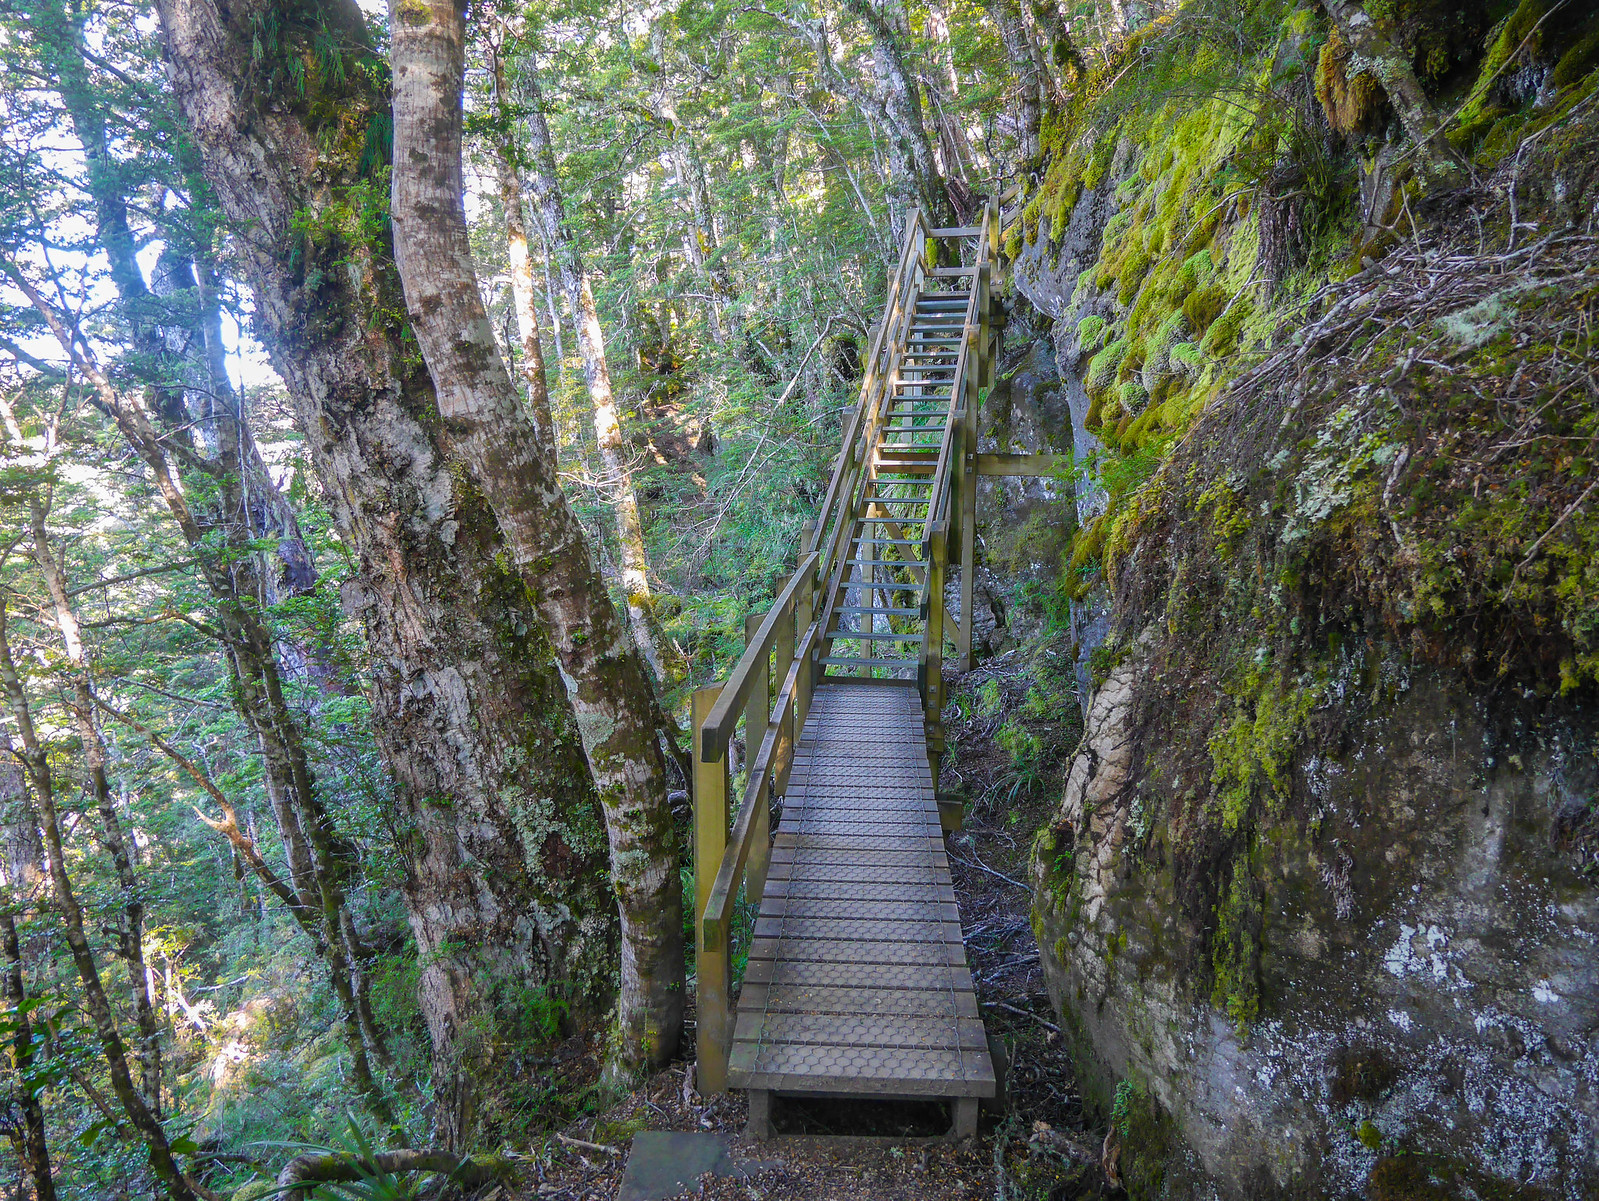 Stairs along the limestone bluffs